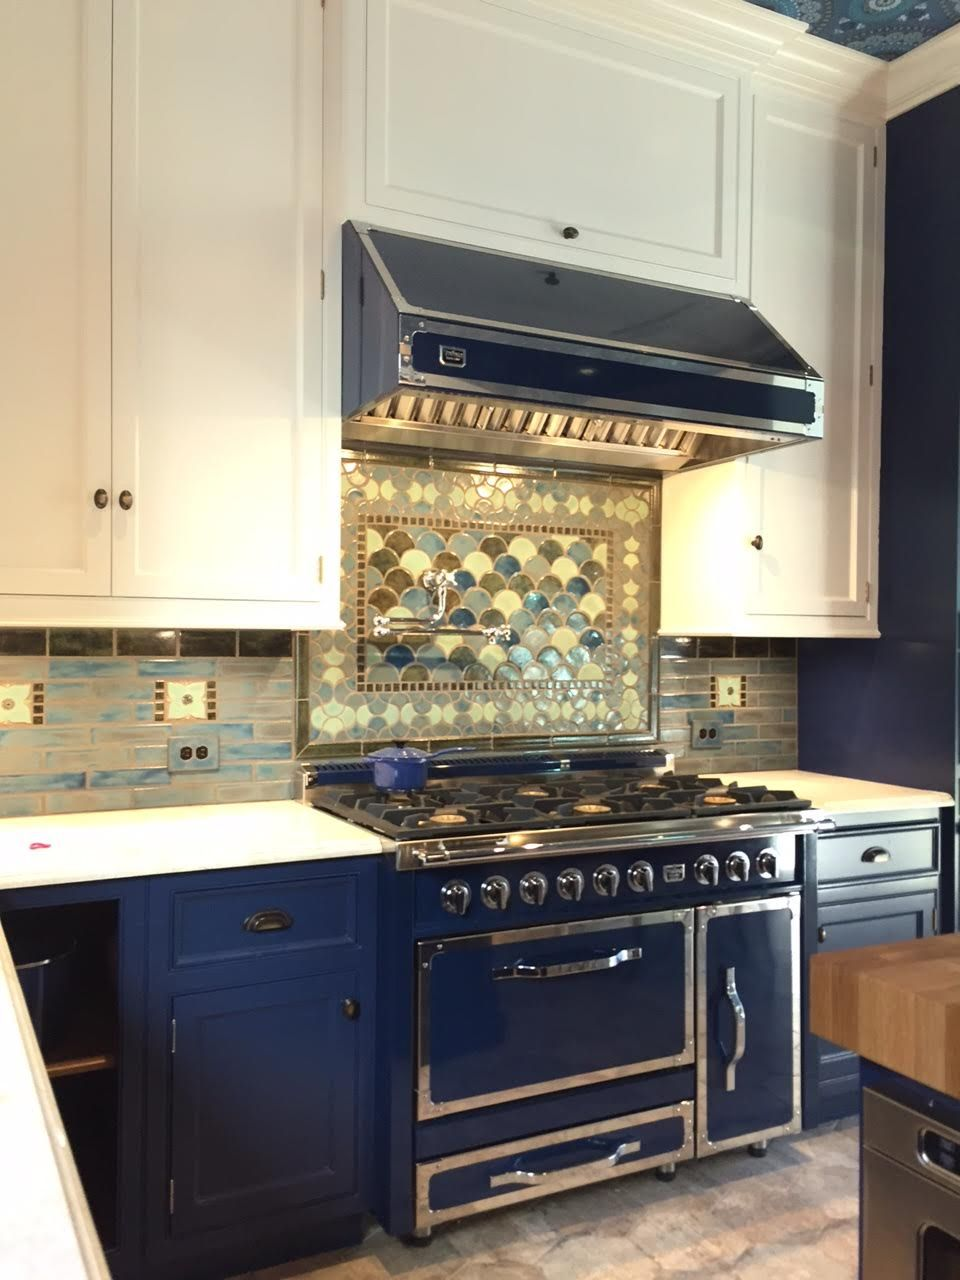 - Peacock Tiles Craftsman Style Kitchen, Unique Kitchen Backsplash